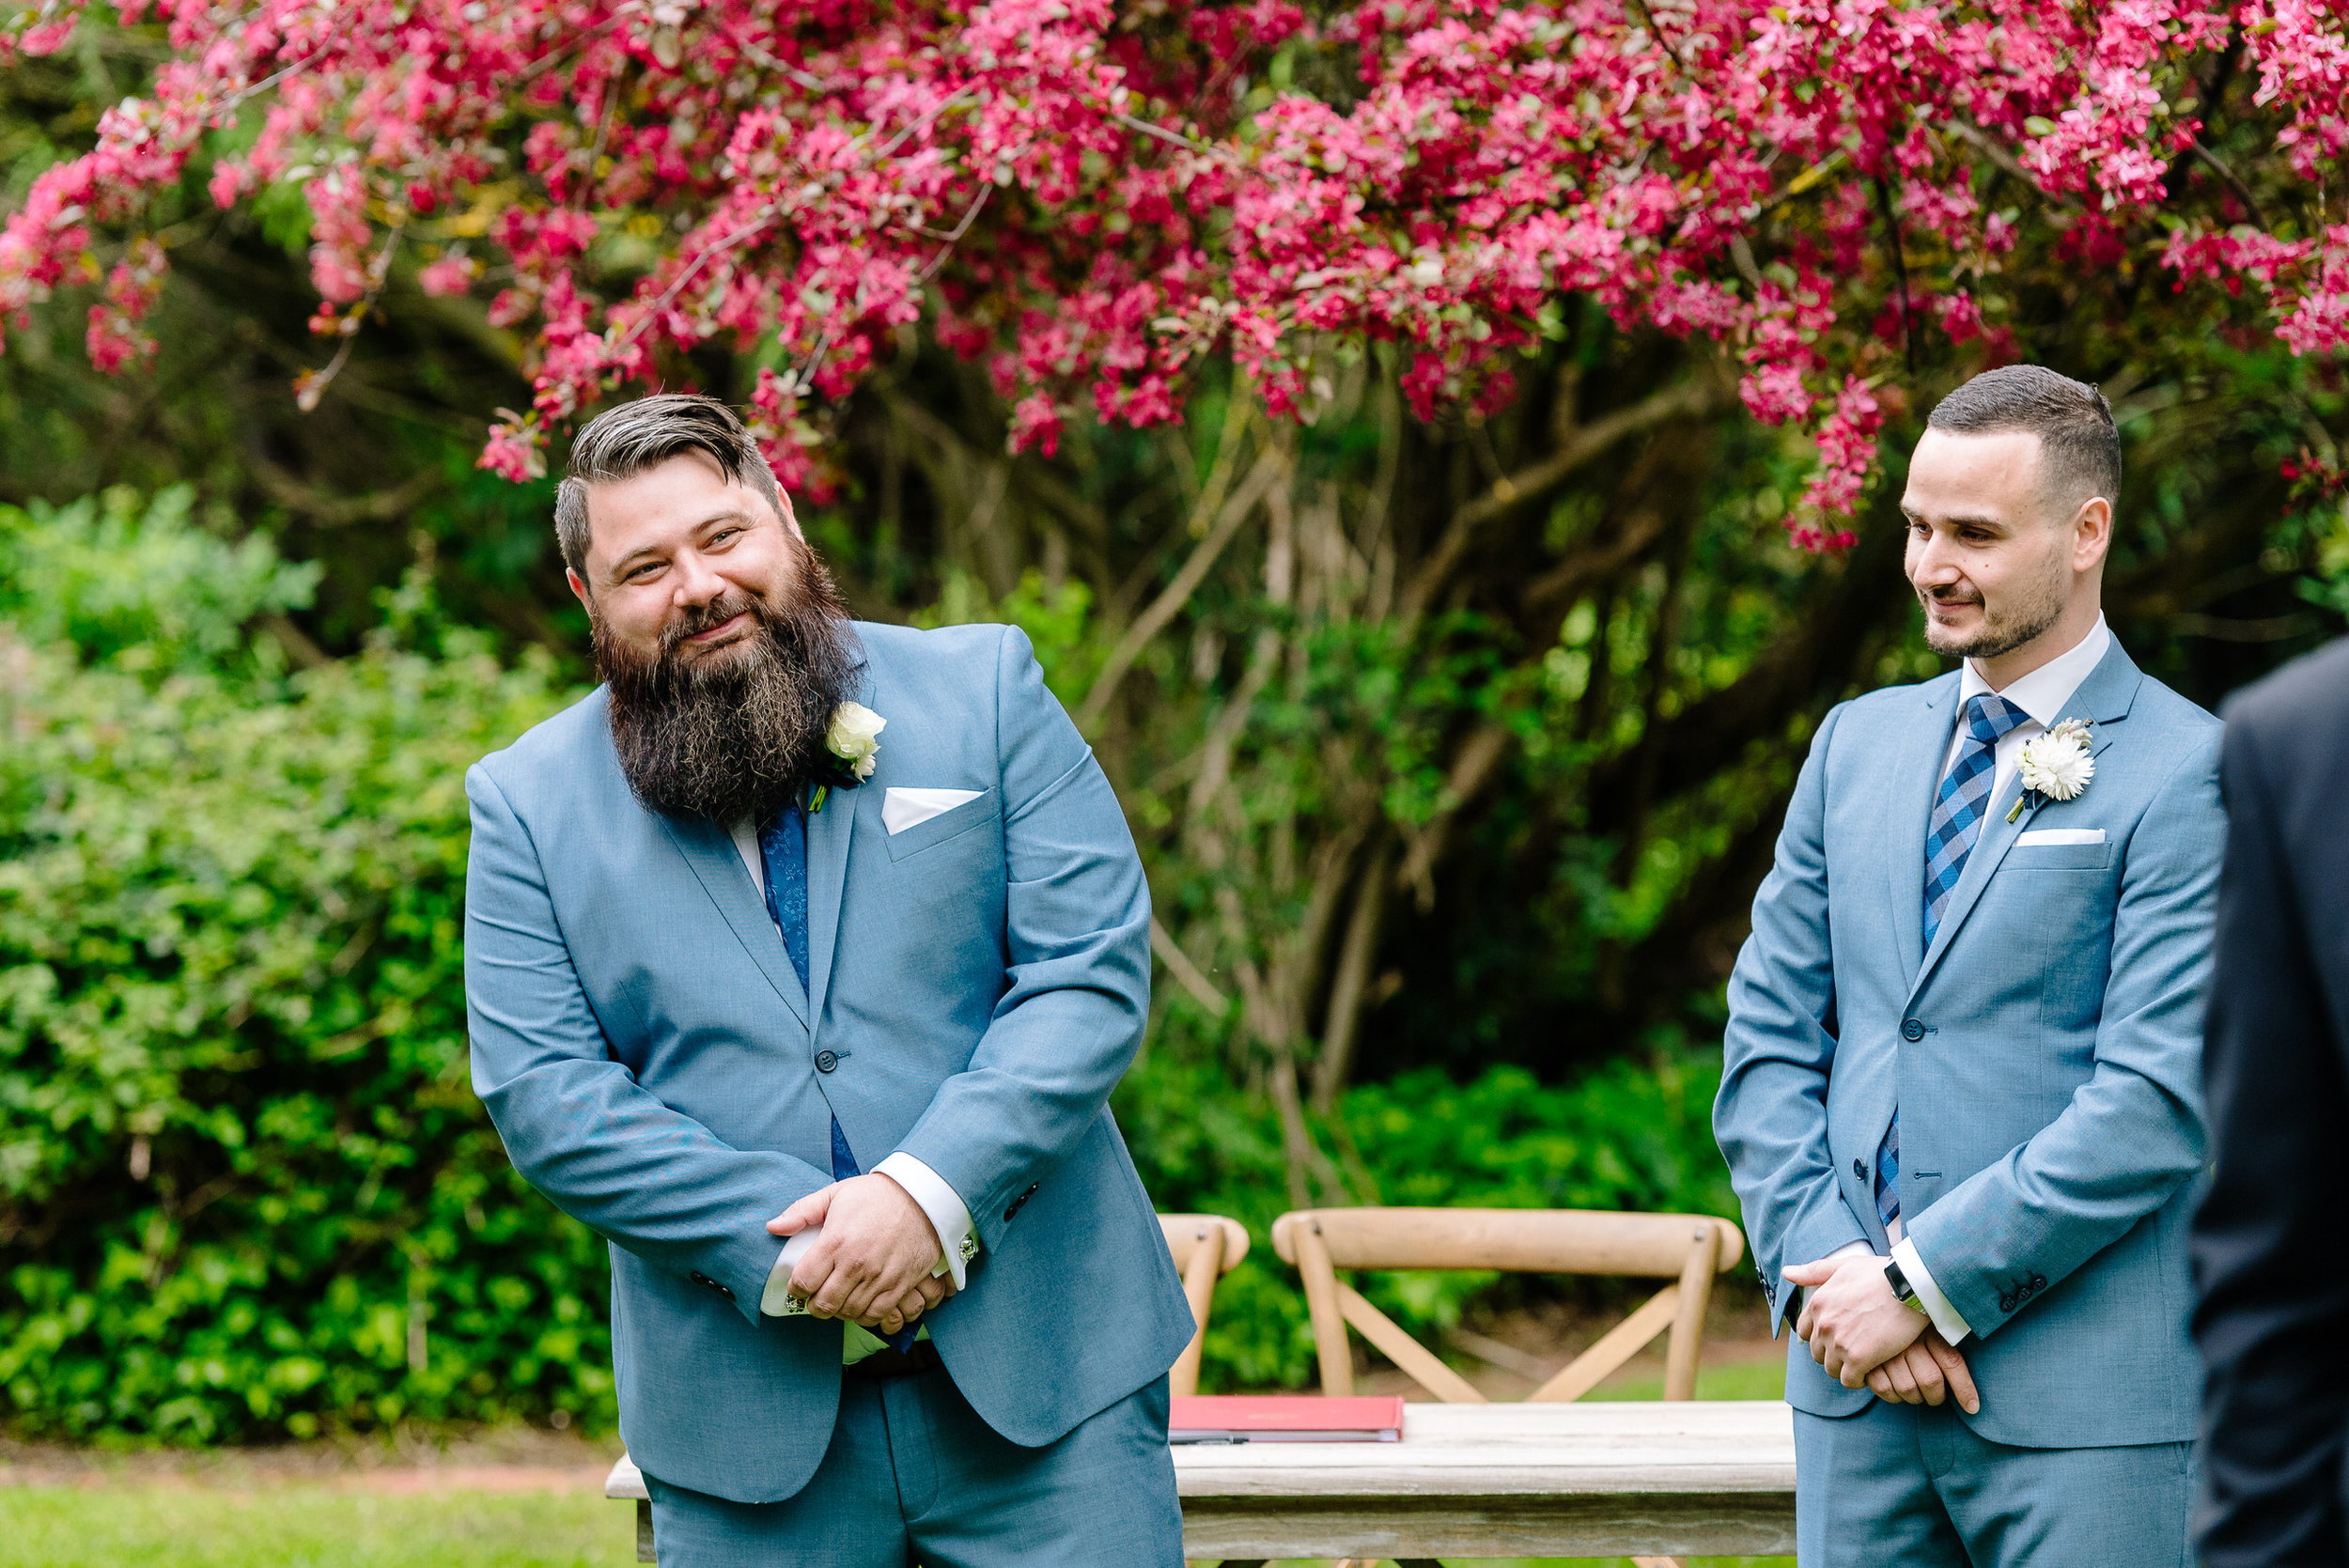 Chateau_Dore_Wedding_Photography_Justin_and_Jim-106.JPG